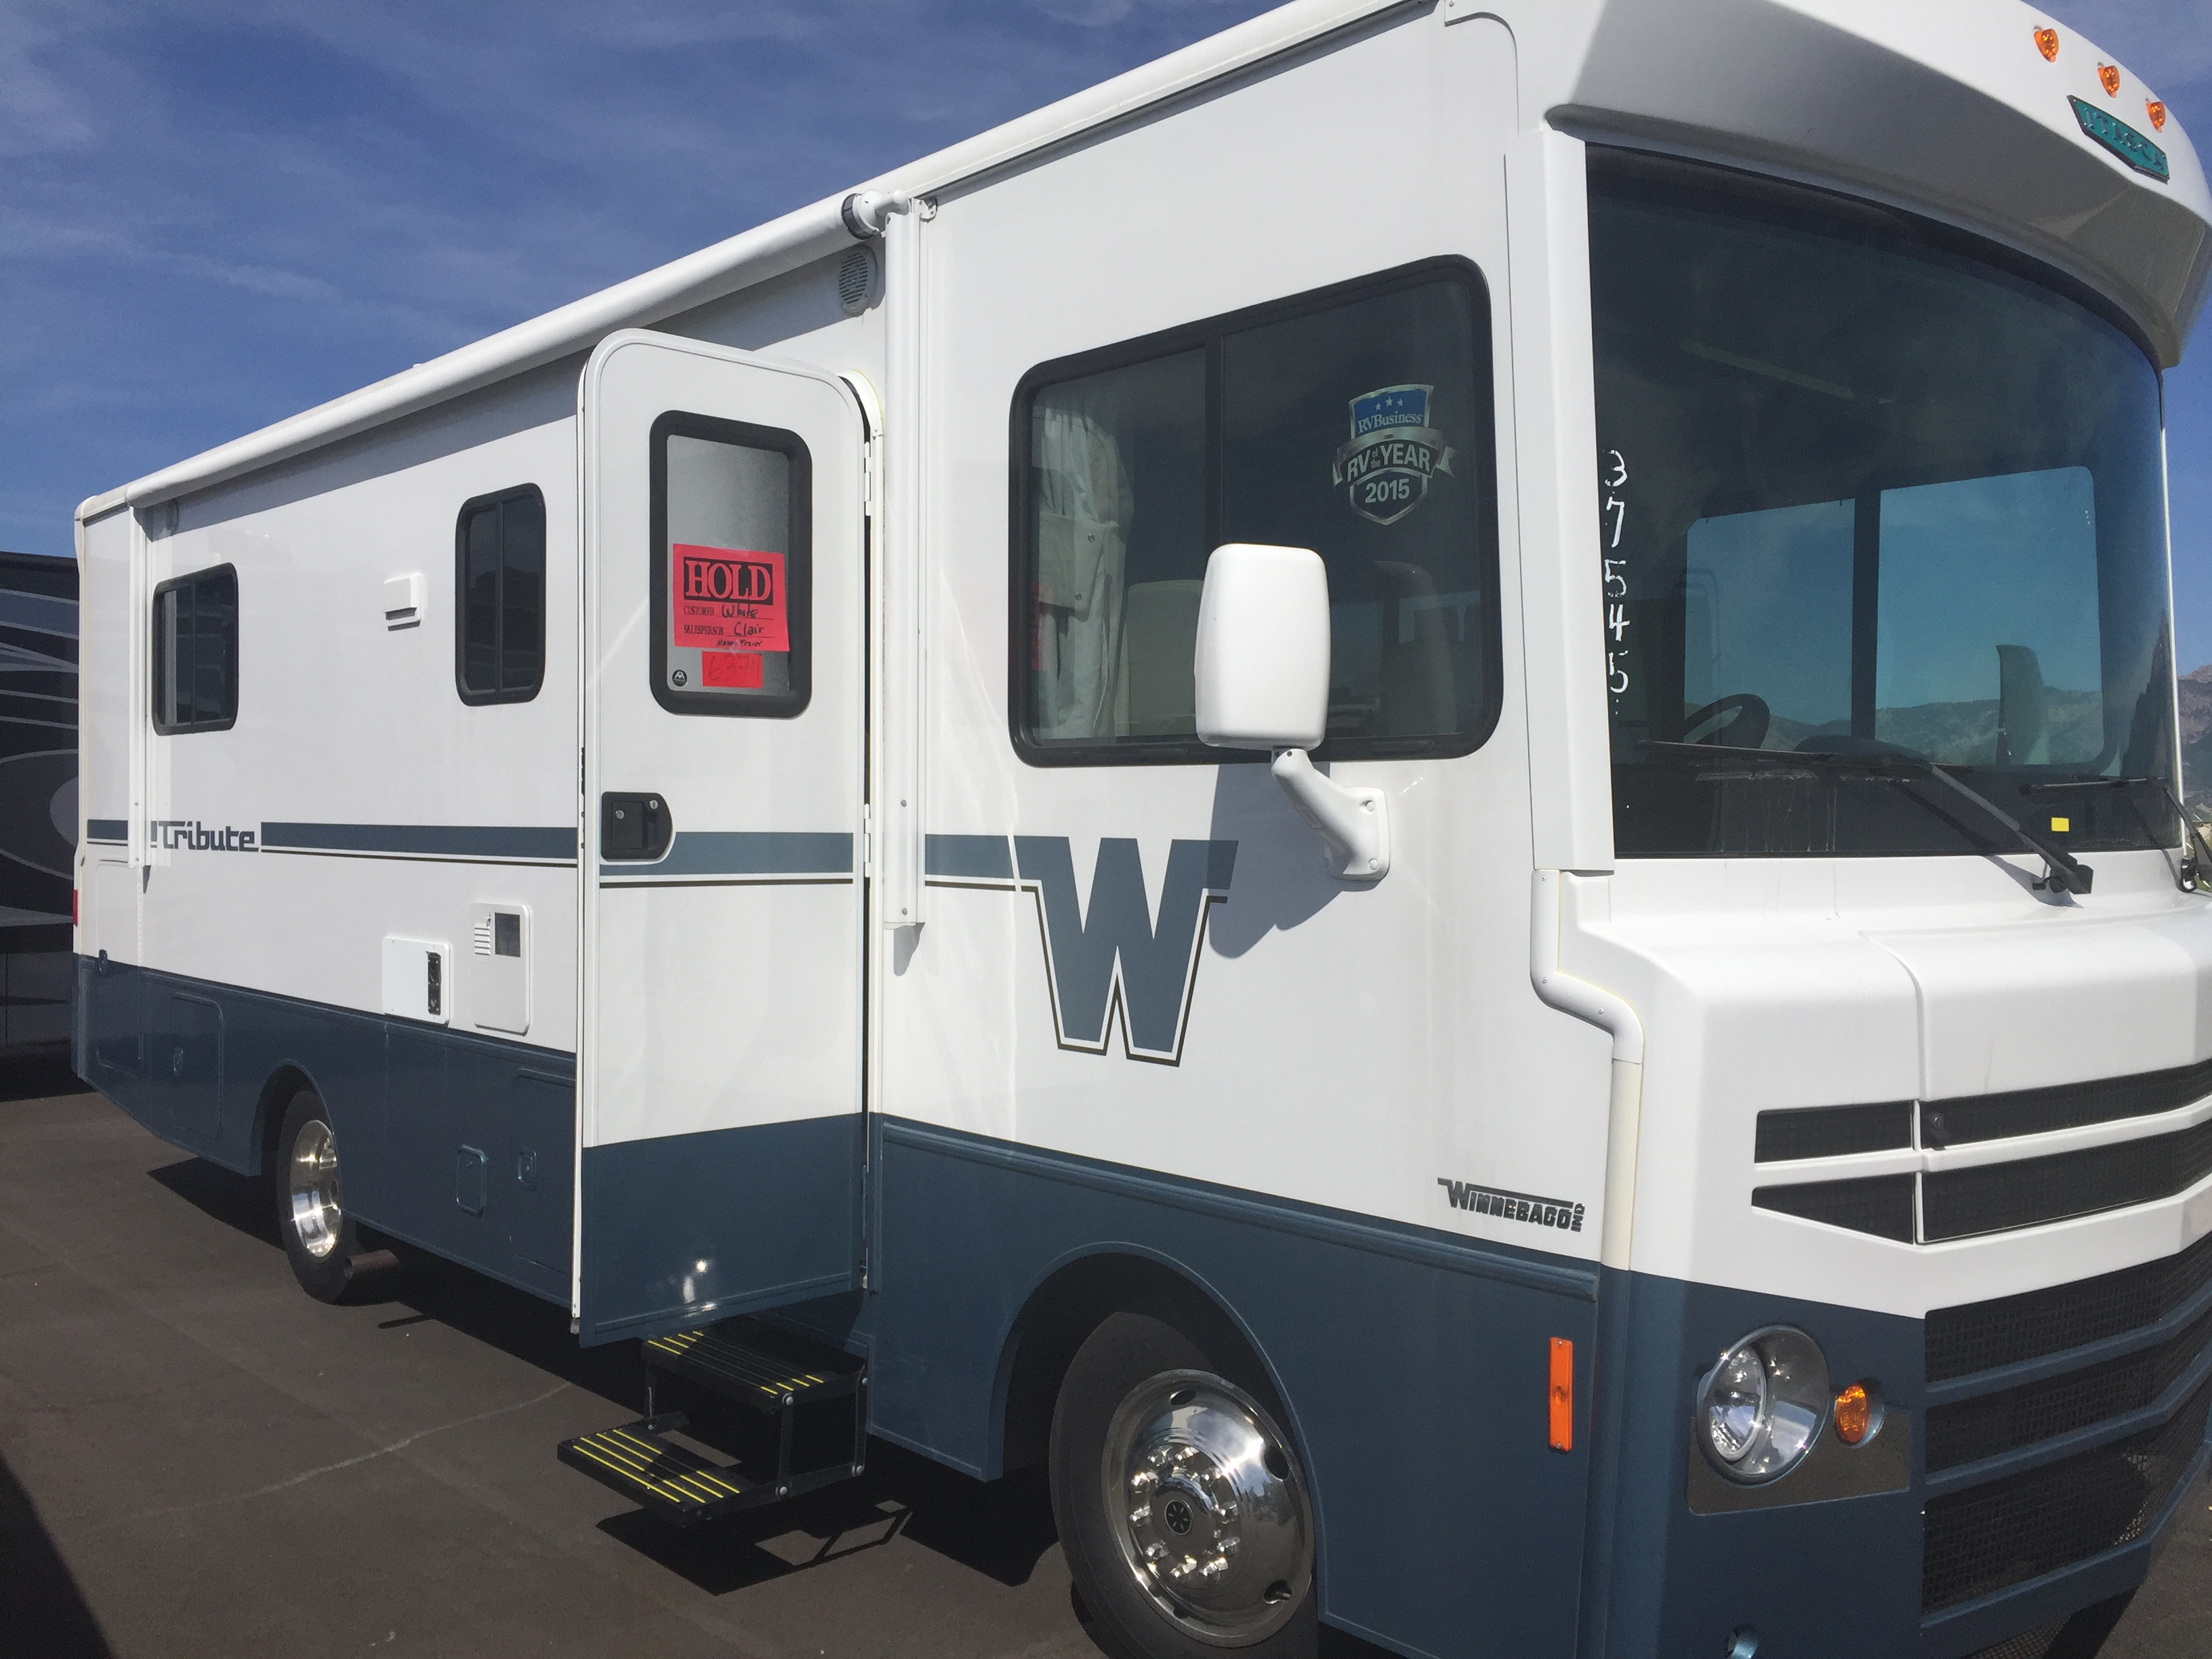 Top 25 Ogden, UT RV Rentals and Motorhome Rentals | Outdoorsy